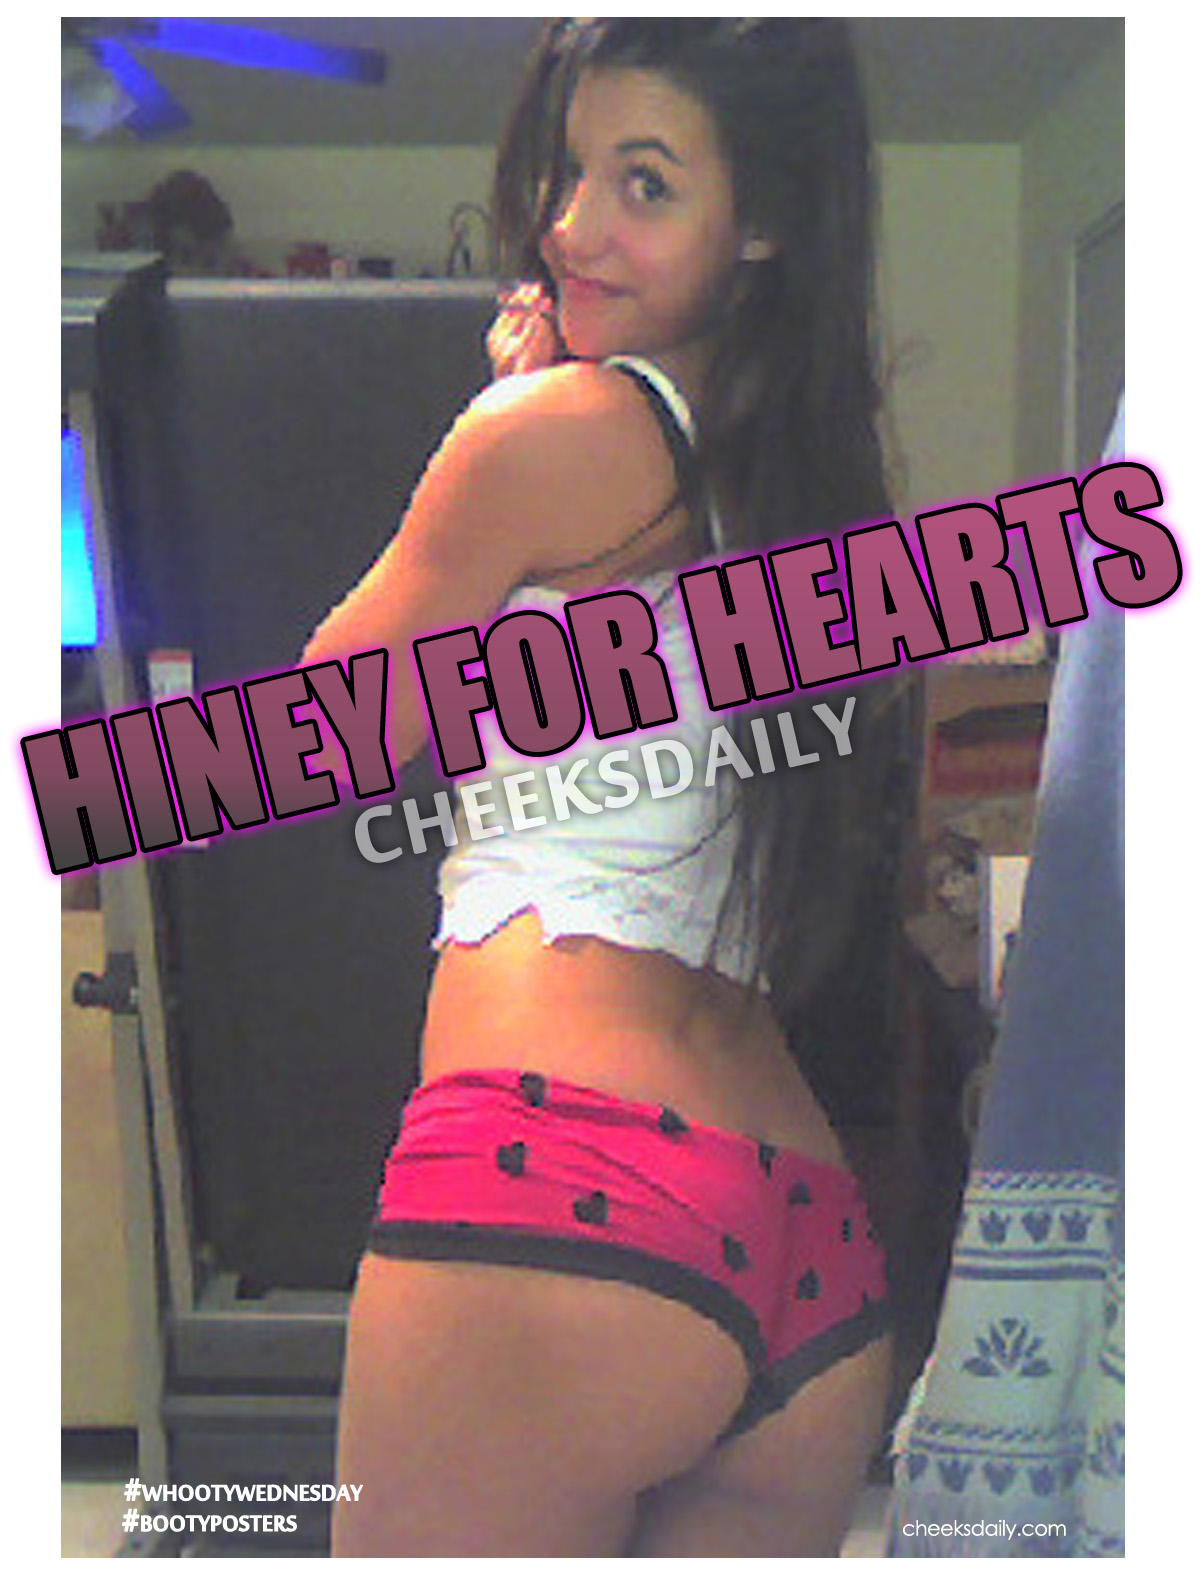 sexy panties filled with booty hearts cheeksdaily